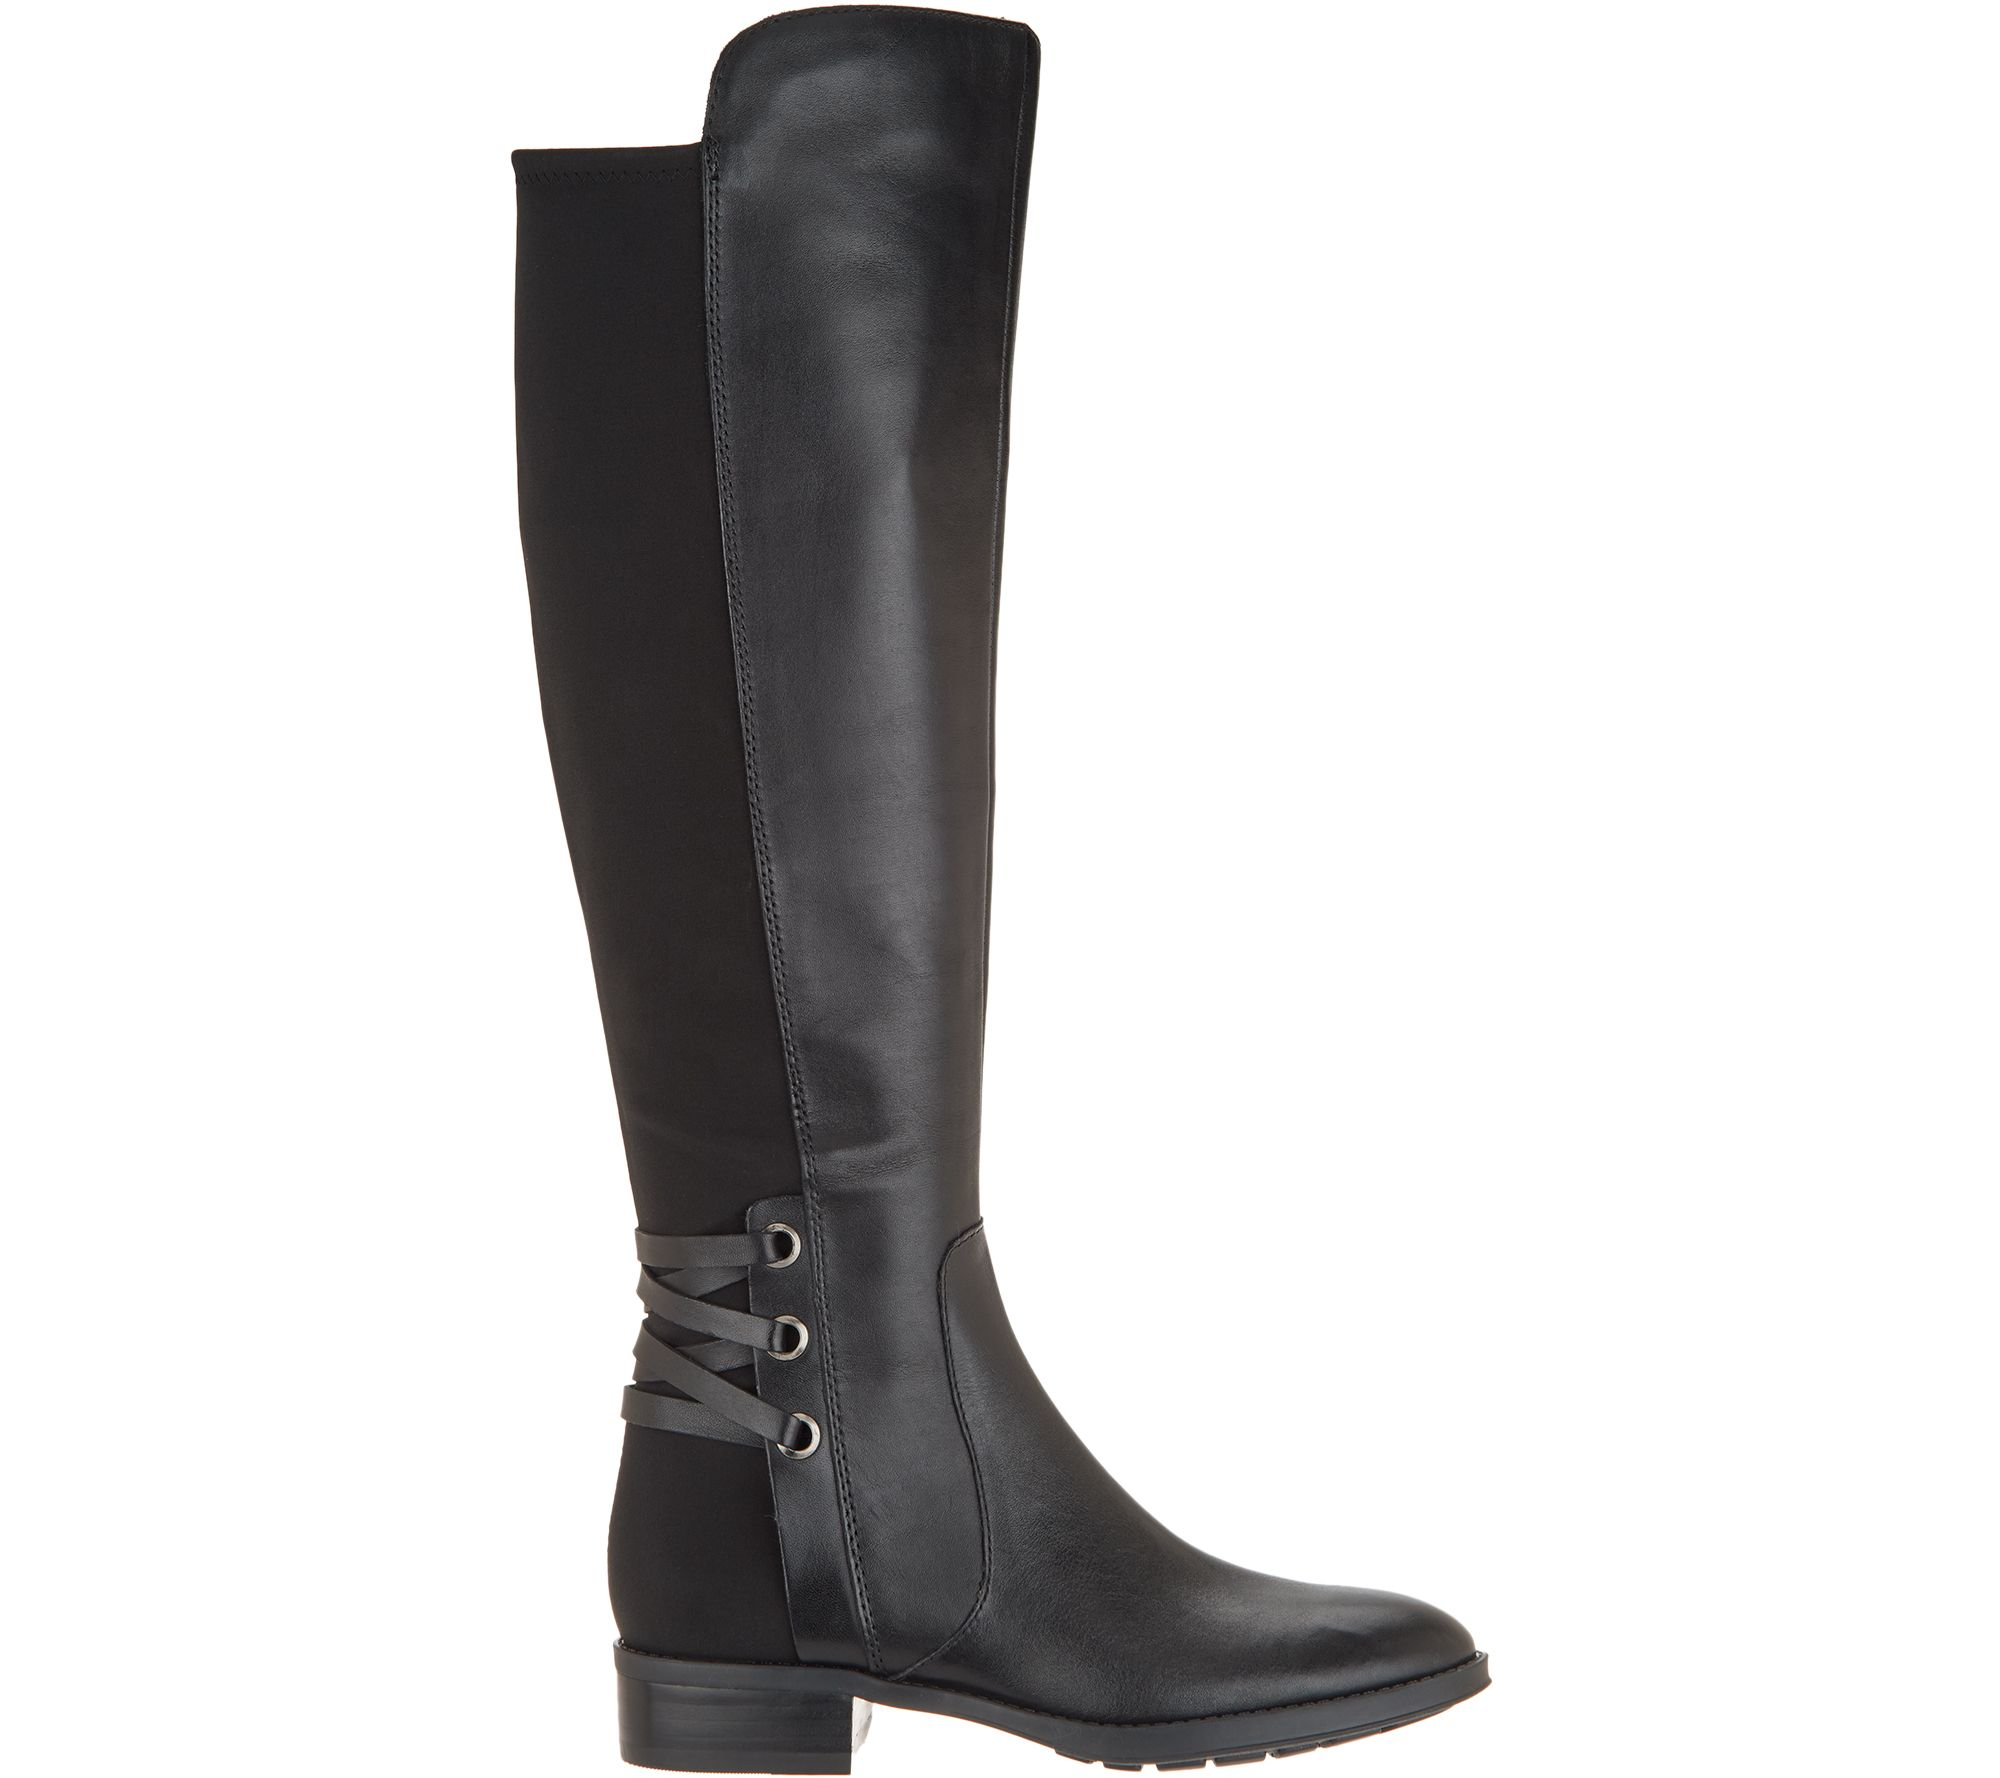 a18f7a819 Vince Camuto Medium Calf Leather / Suede Tall Shaft Boots- Pauletta - Page  1 — QVC.com